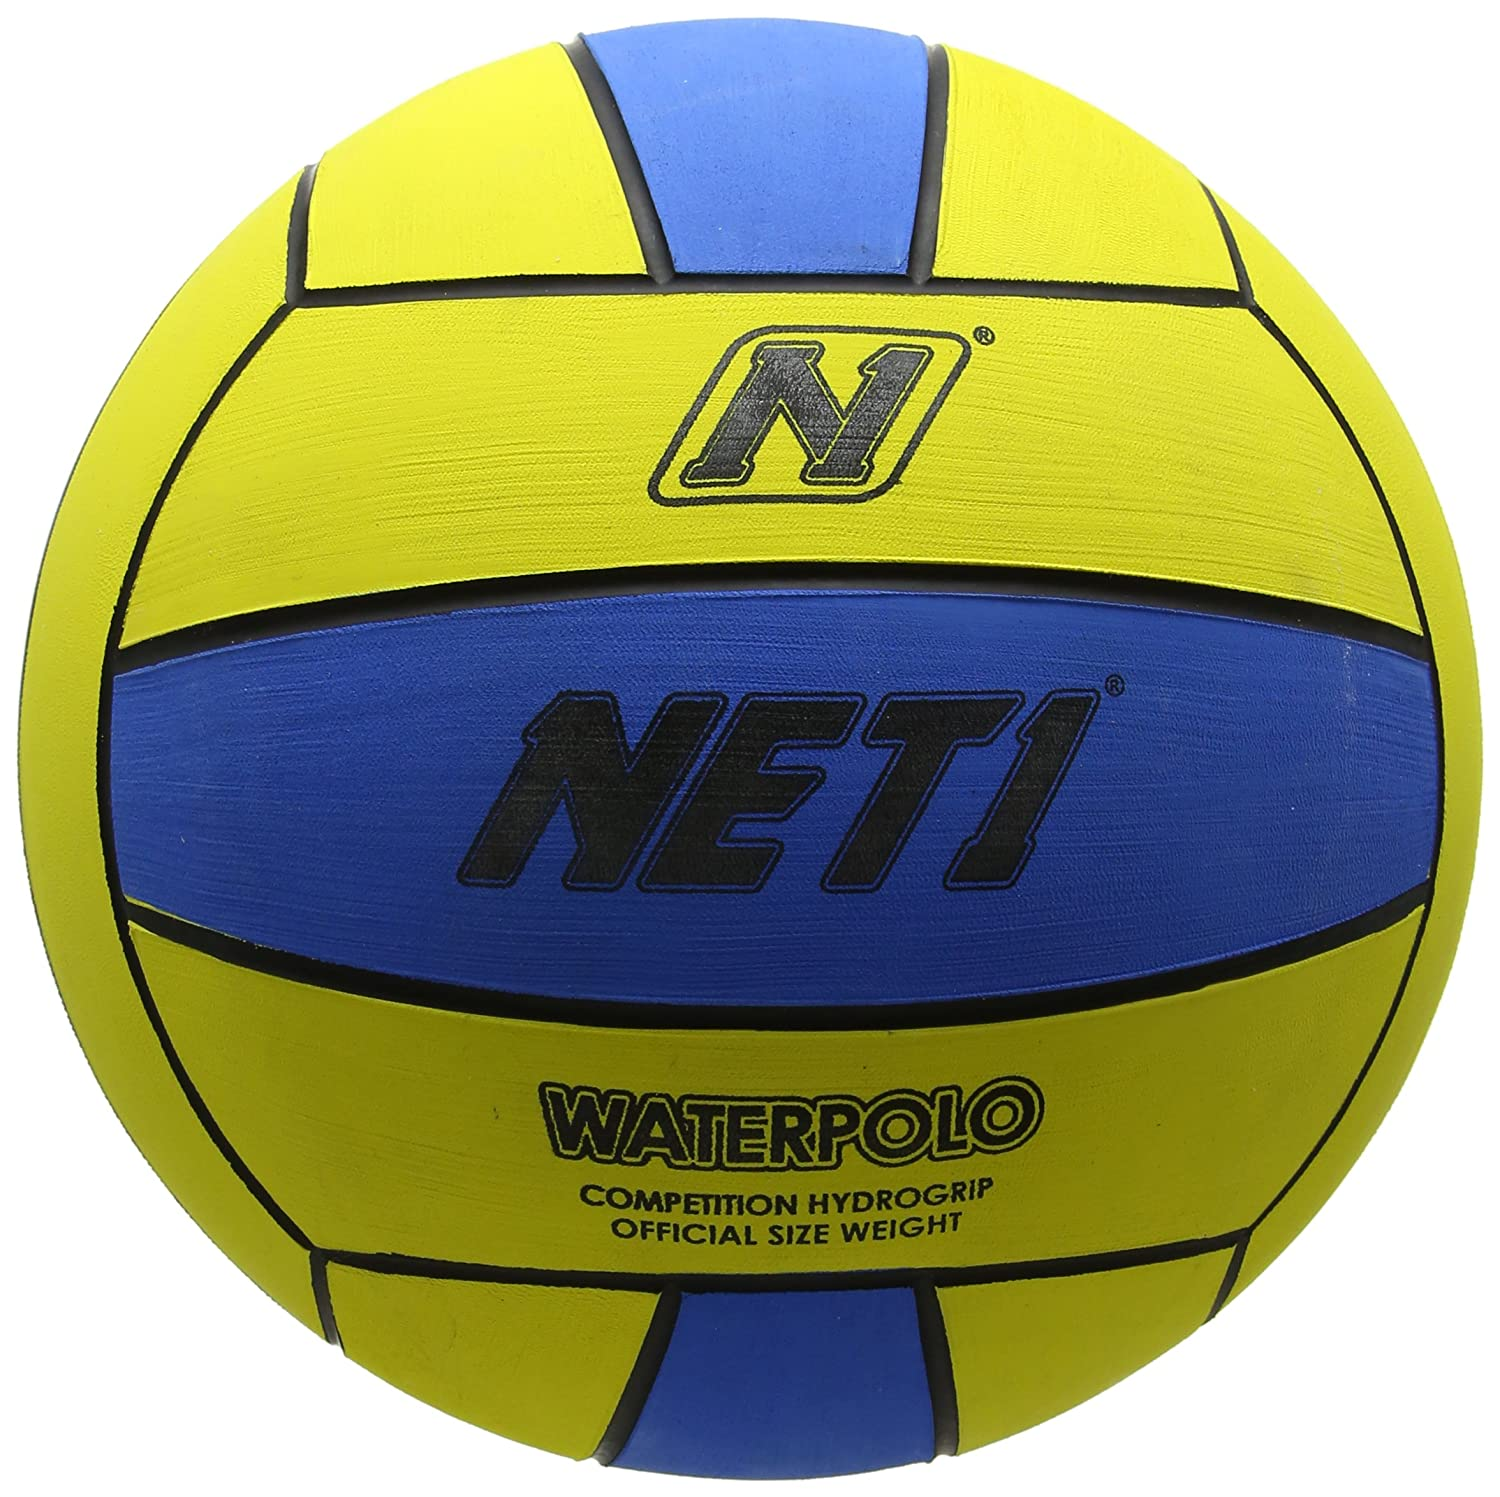 NET1 Game - Pelota de Waterpolo, Color Amarillo: Amazon.es ...